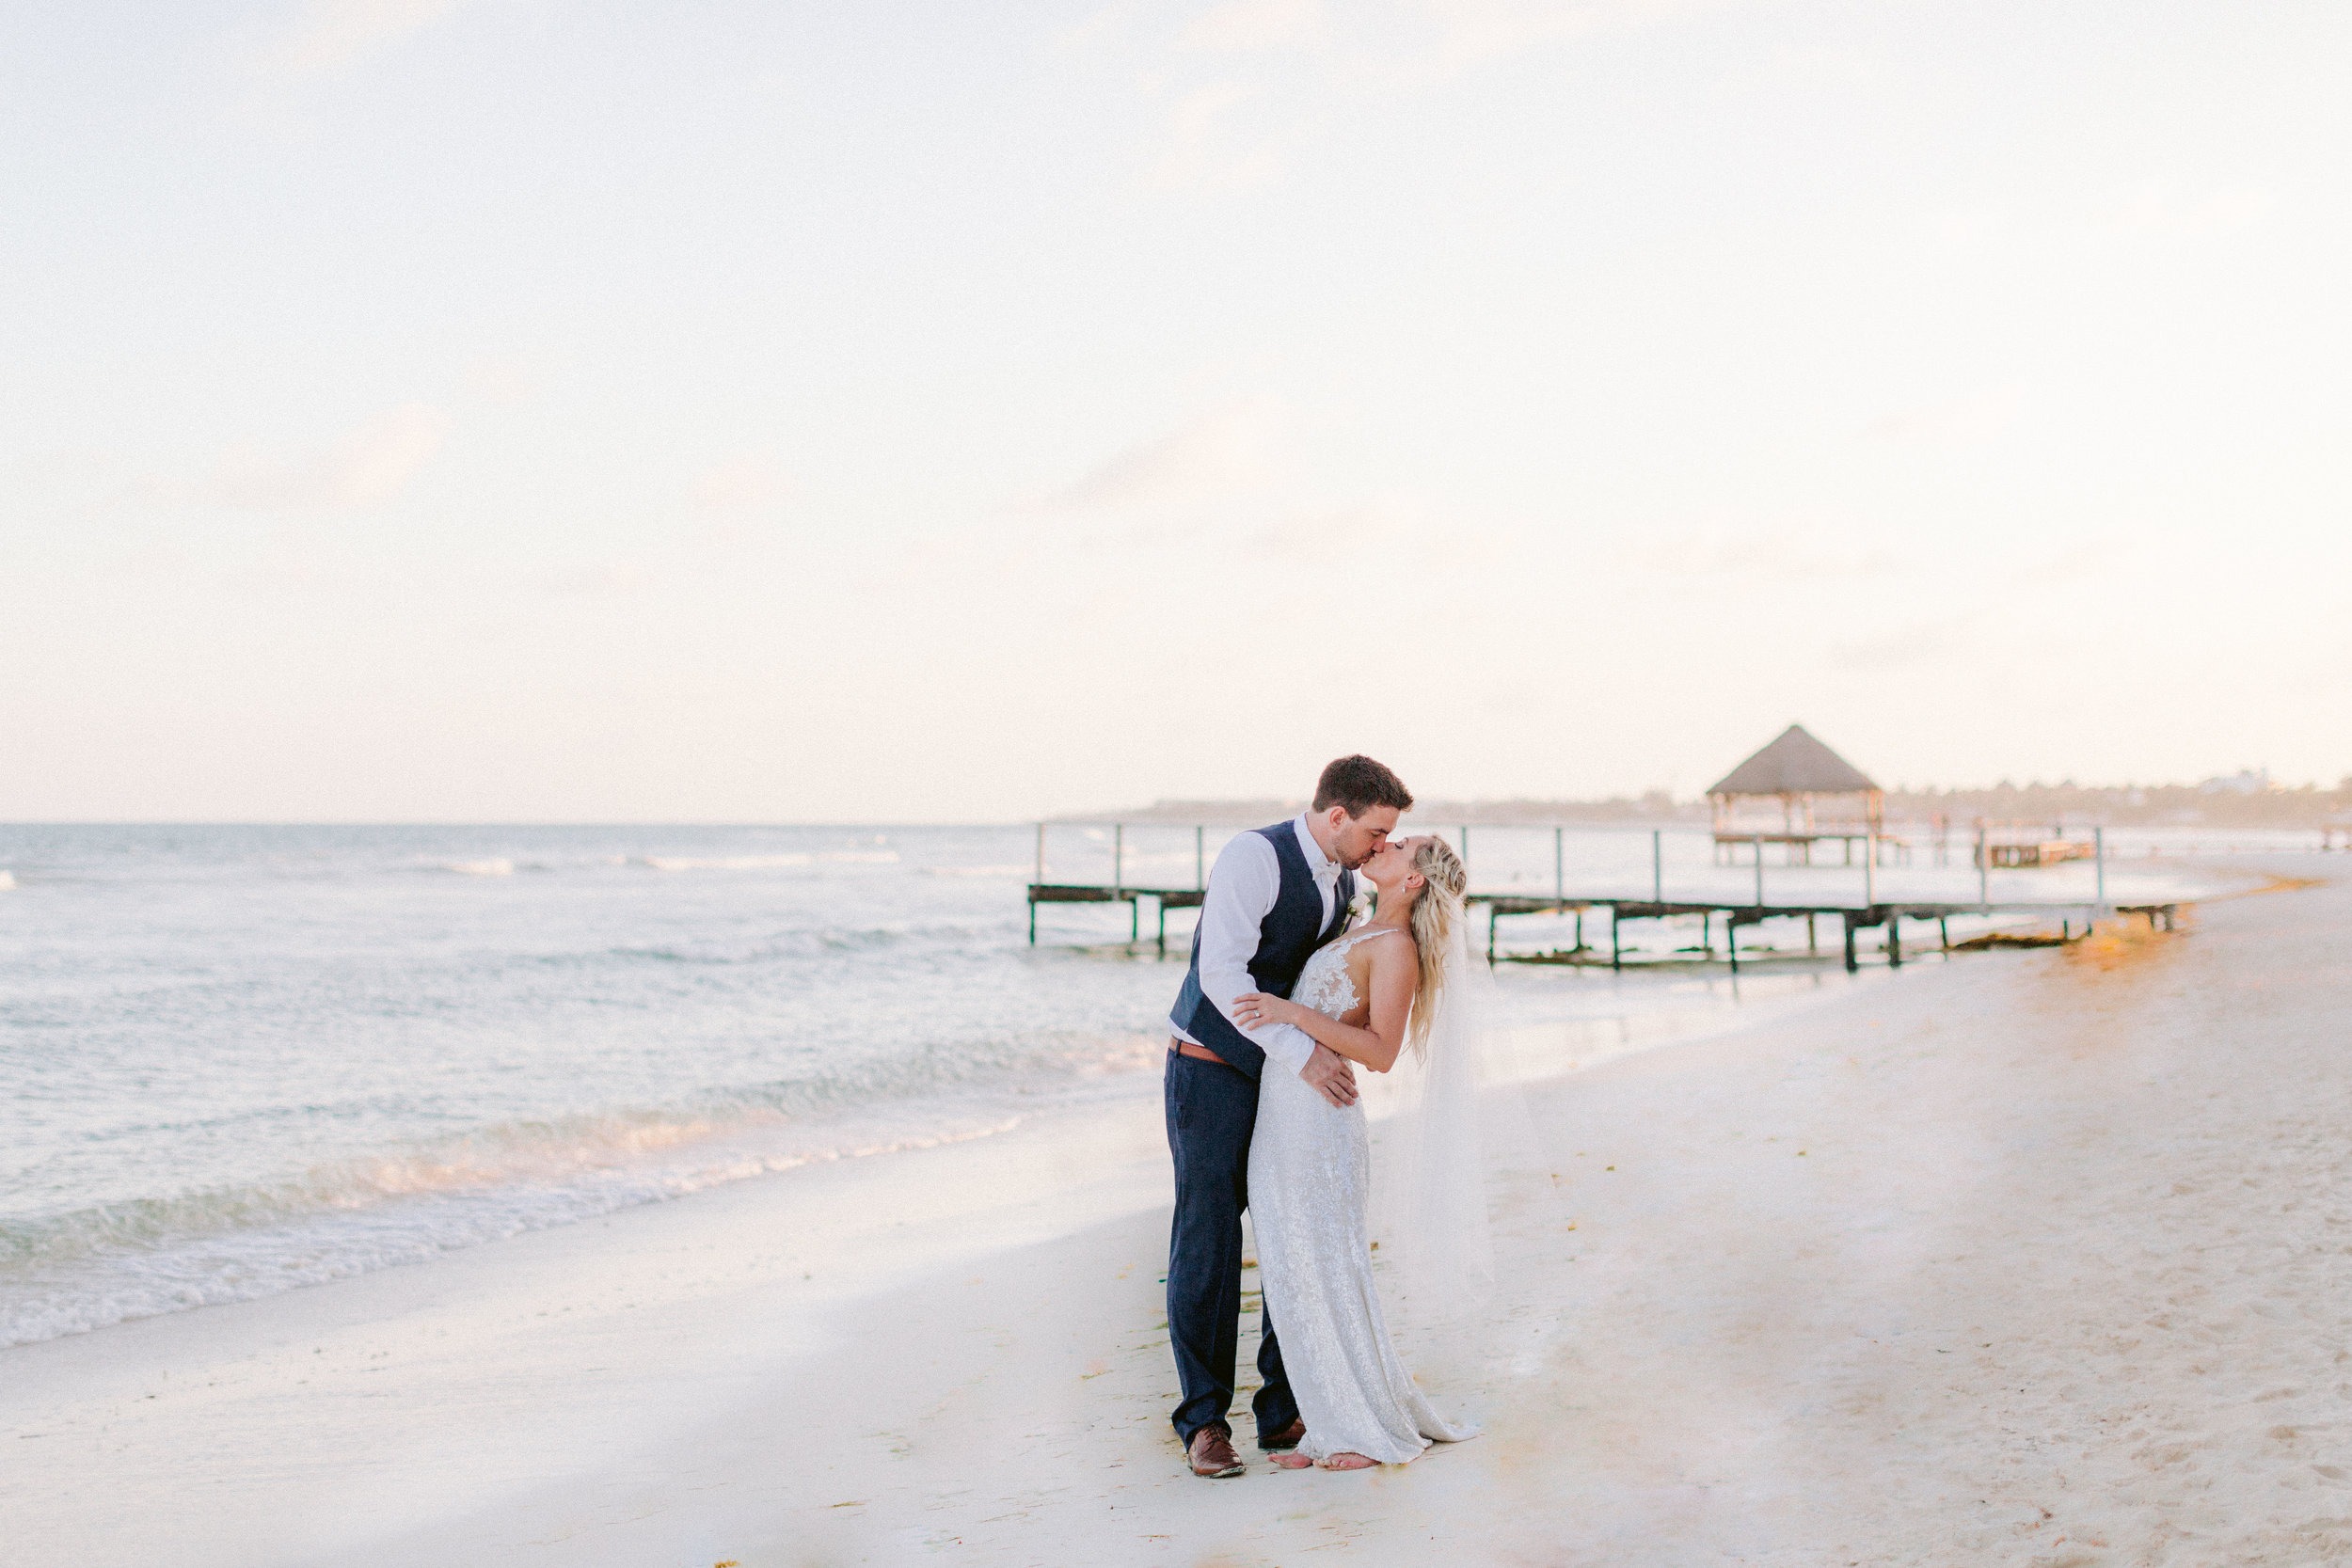 Kim_Jeff_Cancun Wedding_Portraits_Kurtz_Orpia (122 of 178).jpg